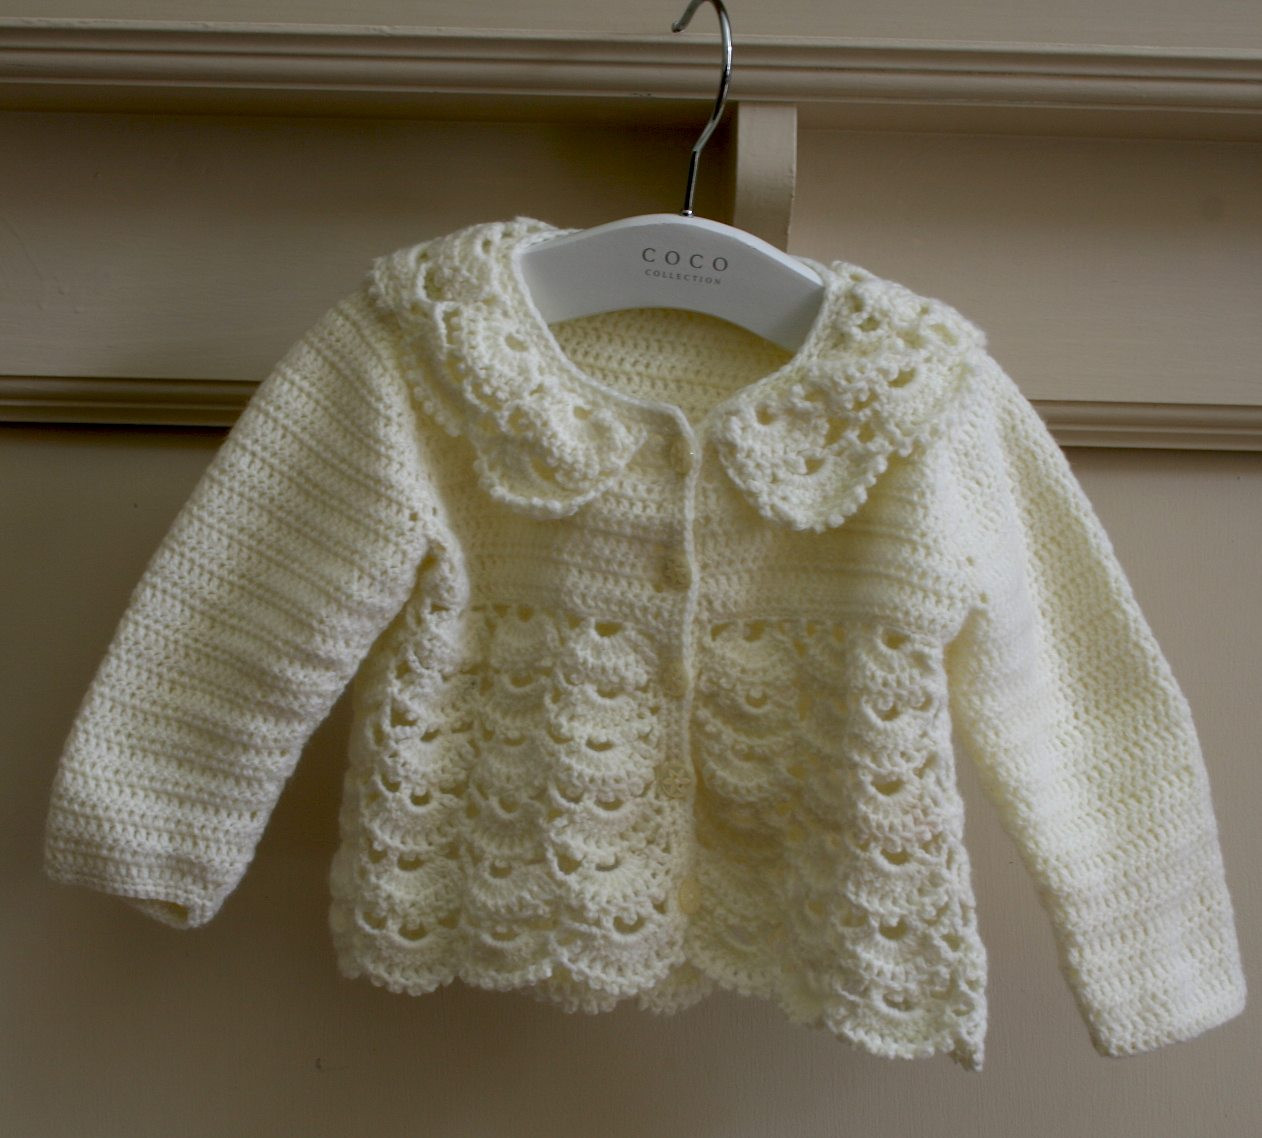 Easy Crochet Baby Sweater Inspirational Free Baby Sweater Crochet Pattern Of Gorgeous 42 Models Easy Crochet Baby Sweater